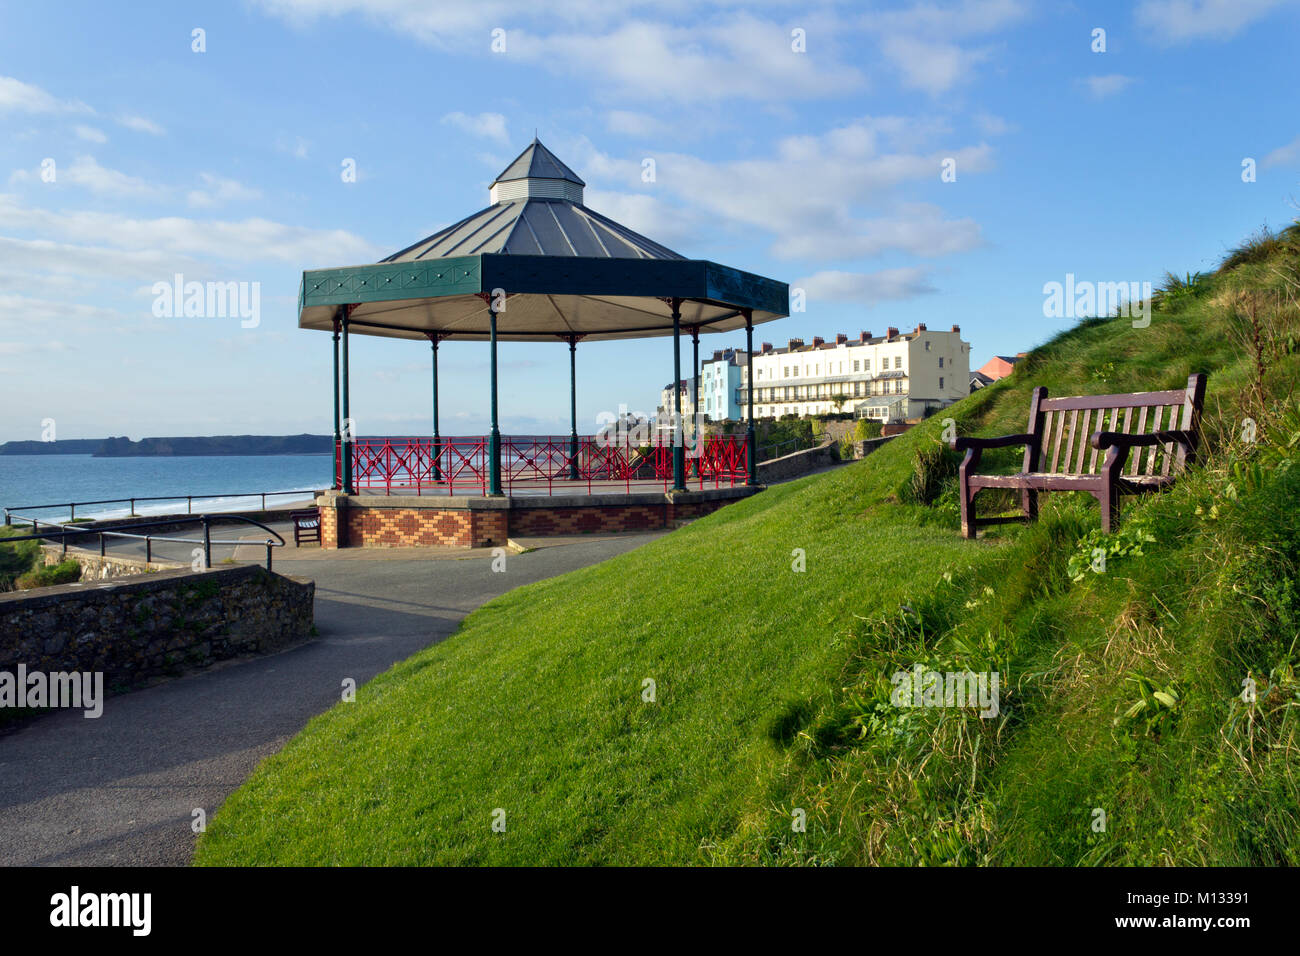 The bandstand on Castle Hill in winter sunshine at Tenby, Pembrokeshire, Wales, UK Stock Photo